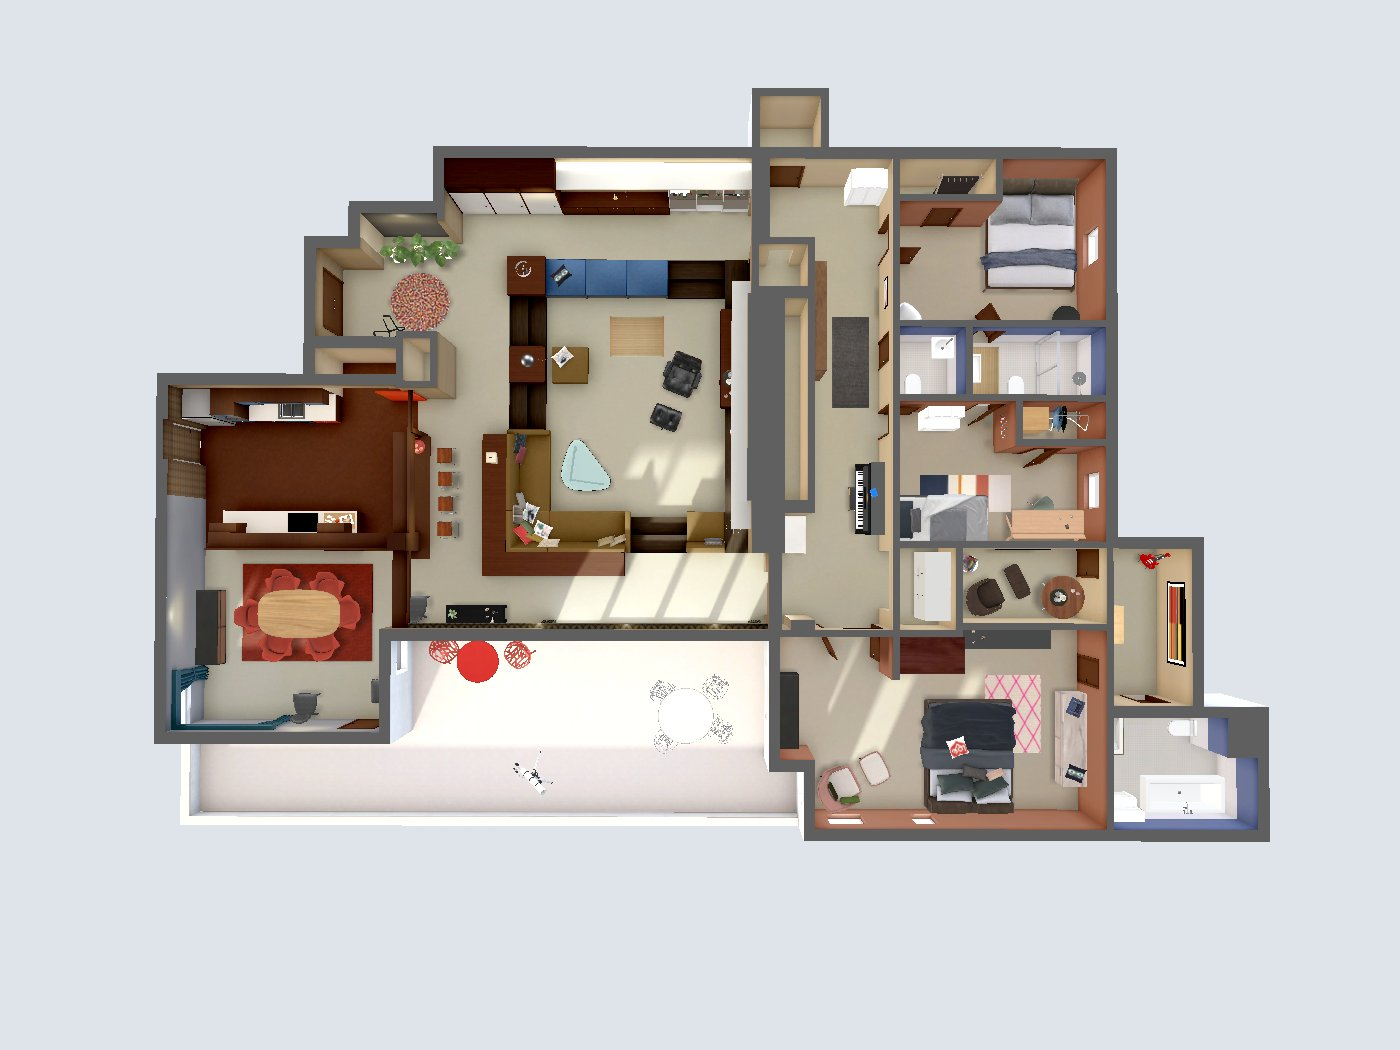 archilogic don draper s apartment